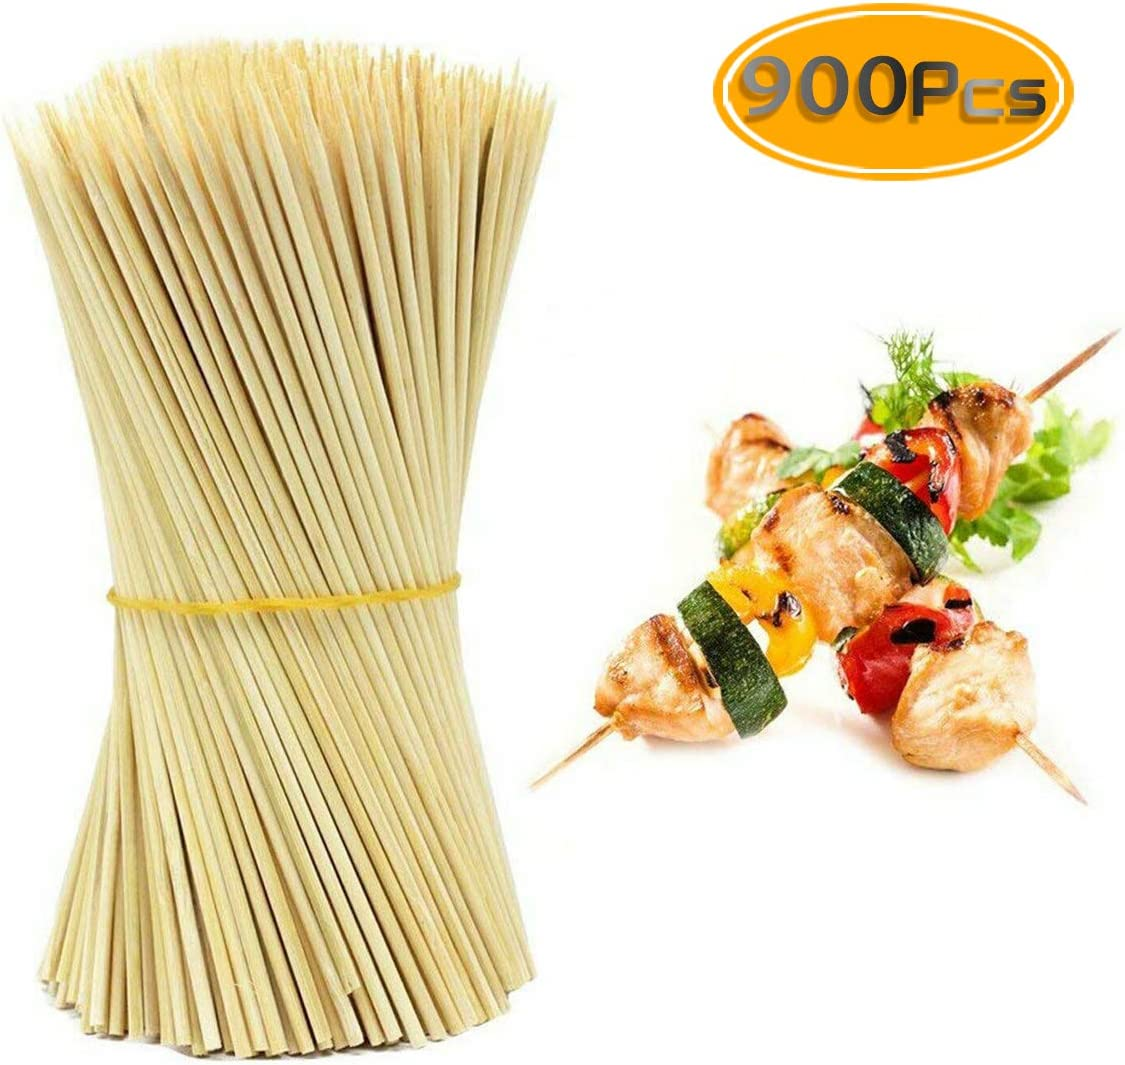 More Size Choices 6//8//10//12//14//30 100 PCS HOPELF 16 Natural Bamboo Skewers Sticks for BBQ,Kabob,Grilling,Barbecue,Kitchen,Roasting,Marshmallows,Plant Stakes,Crafting./Φ=4mm